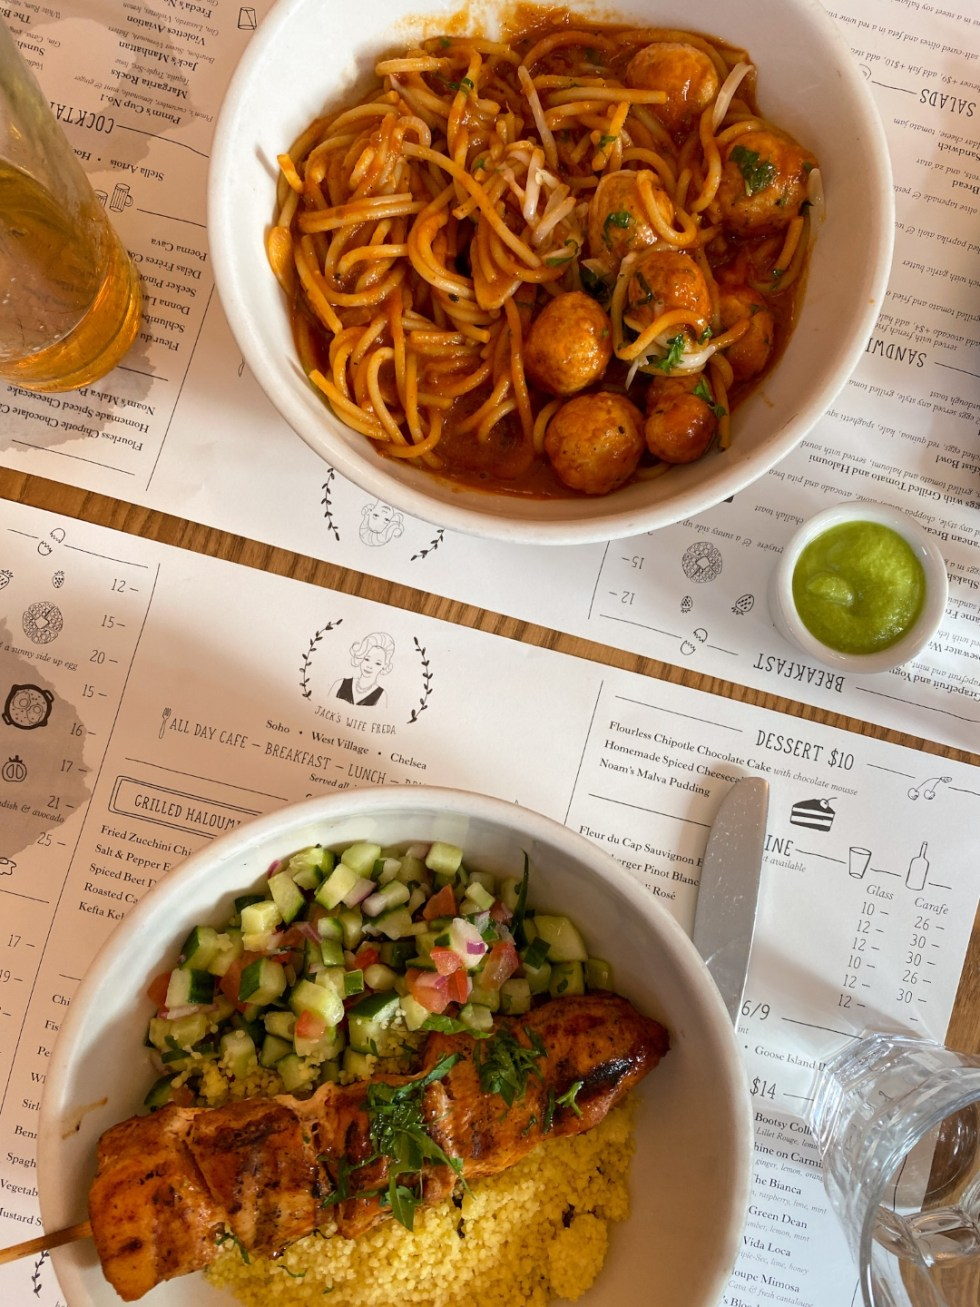 NYC Summer Weekend: Things to Do in NYC in the Summer - I'm Fixin' To - @imfixintoblog   NYC Summer Weekend by popular NC travel blog, I'm Fixin' To: image of plates of food at Jack's Wife Freda restaurant.